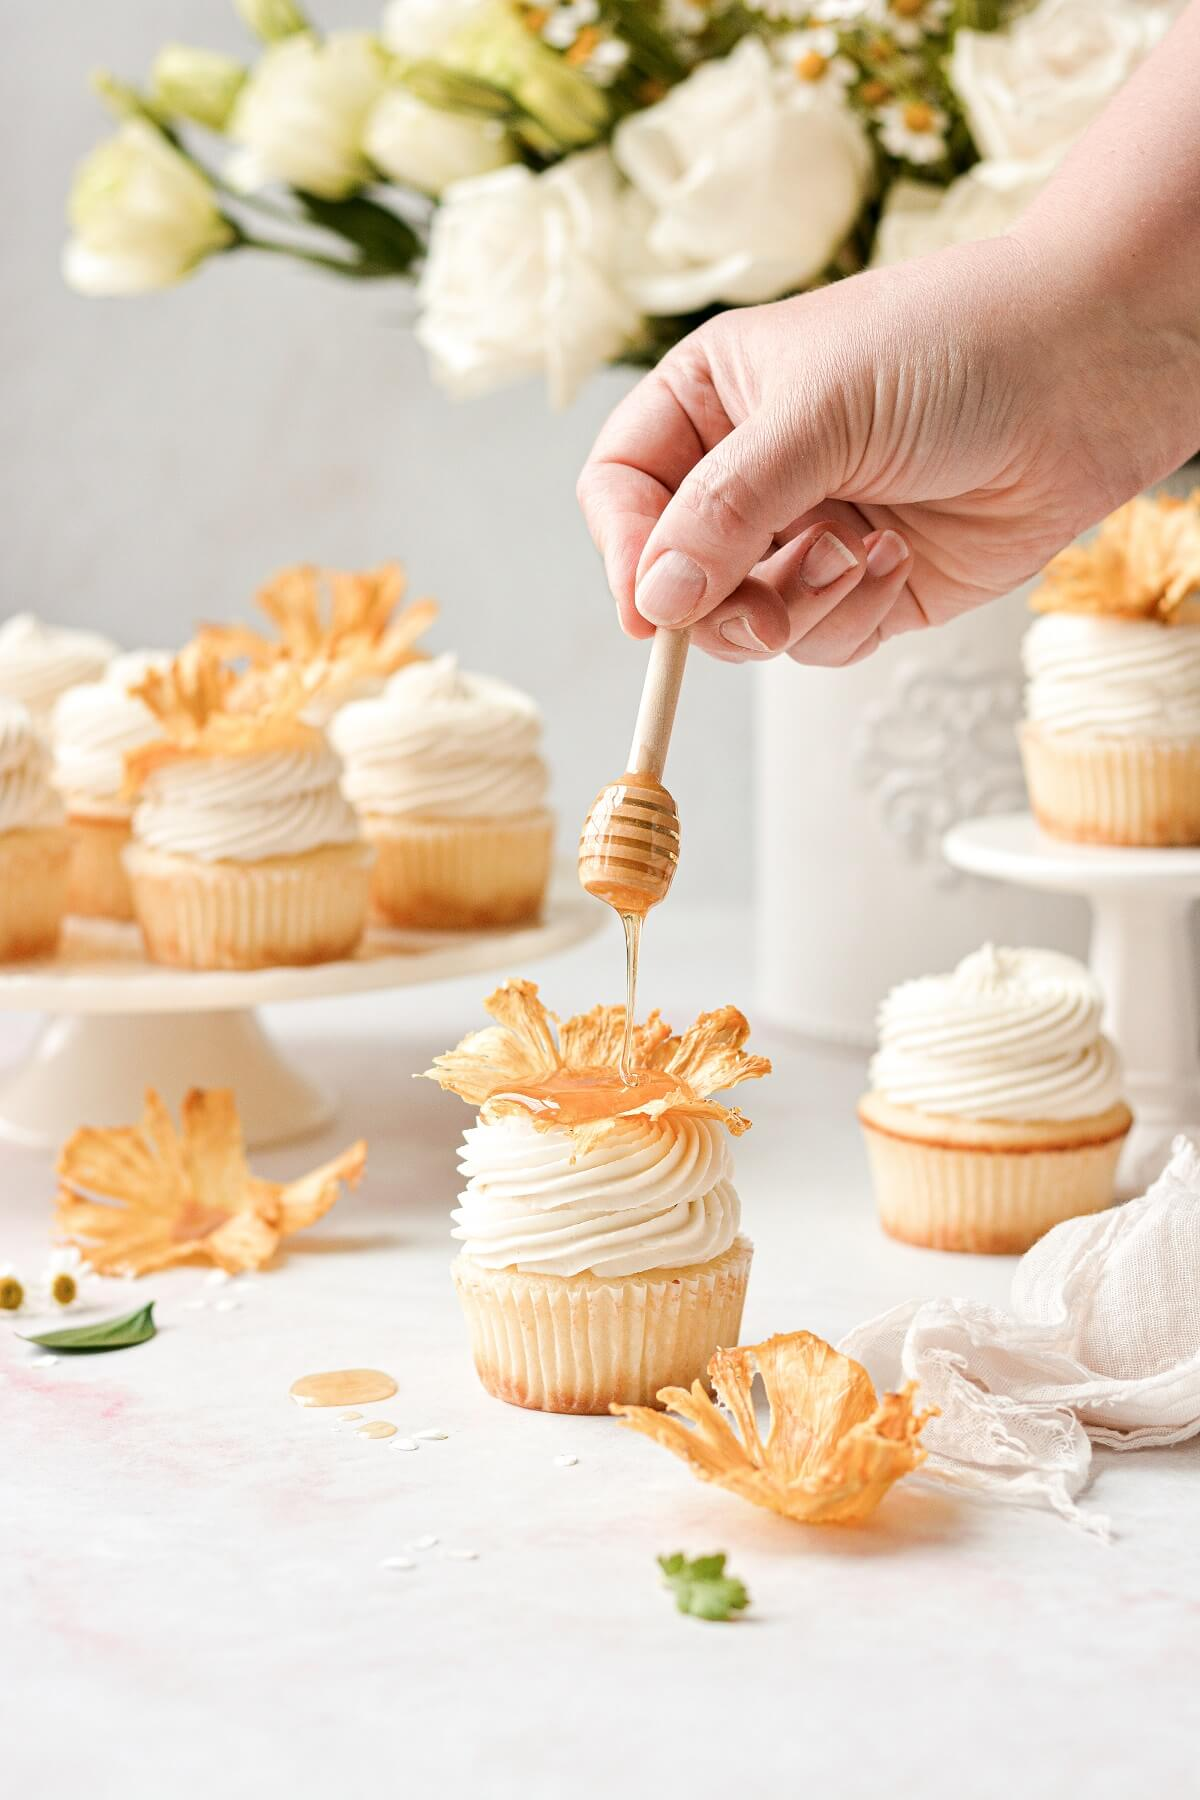 Honey being drizzled over a honey lemon cupcake.